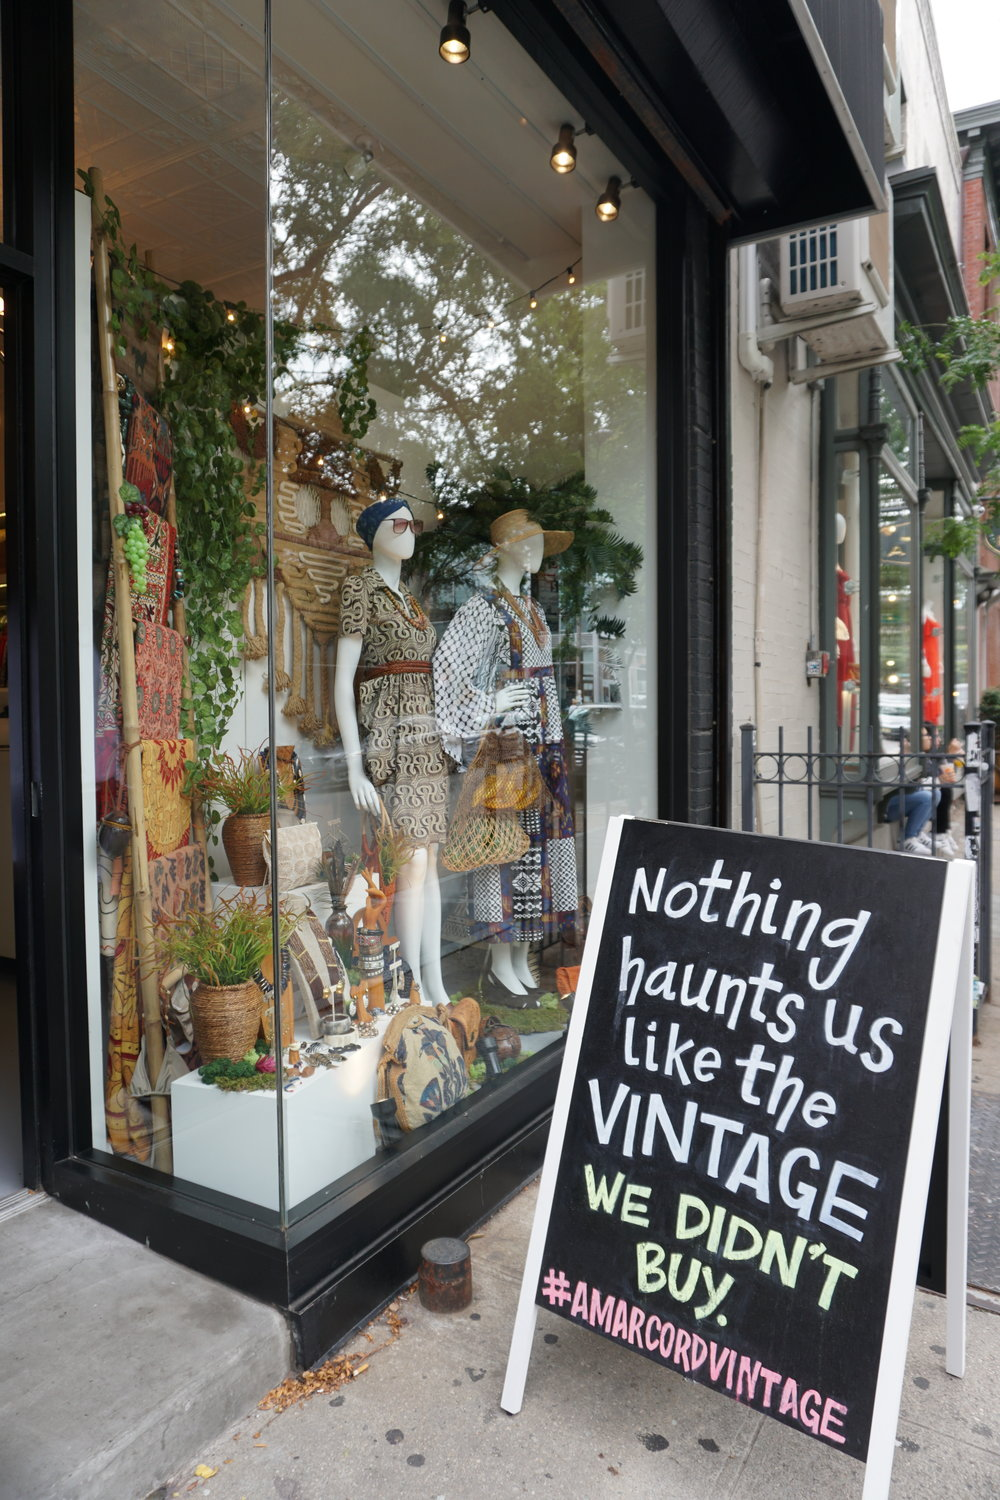 Amarcord Nothing haunts us like the vintage we didn't buy